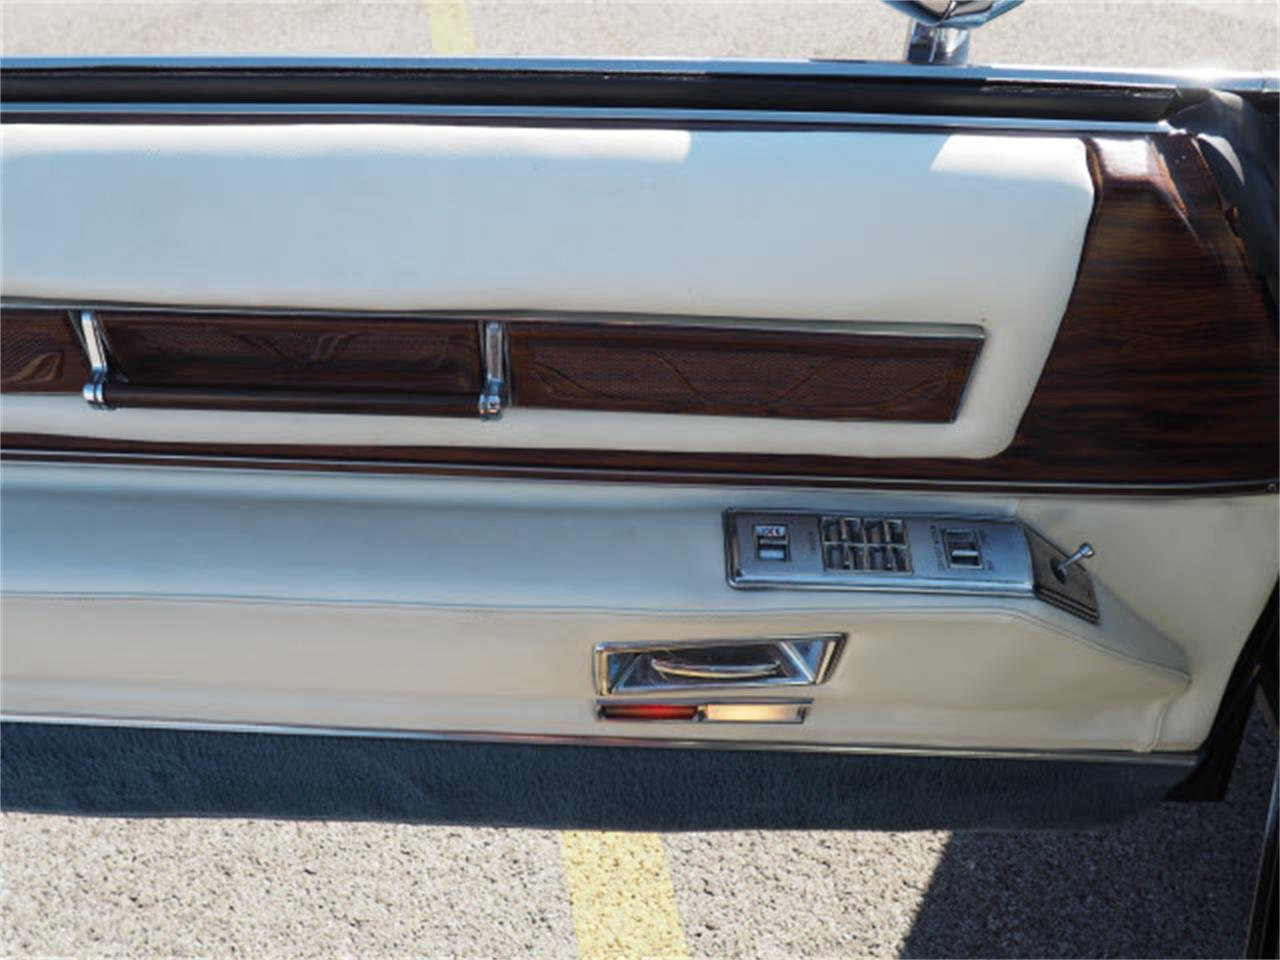 1976 Cadillac Eldorado for sale in Downers Grove, IL – photo 12